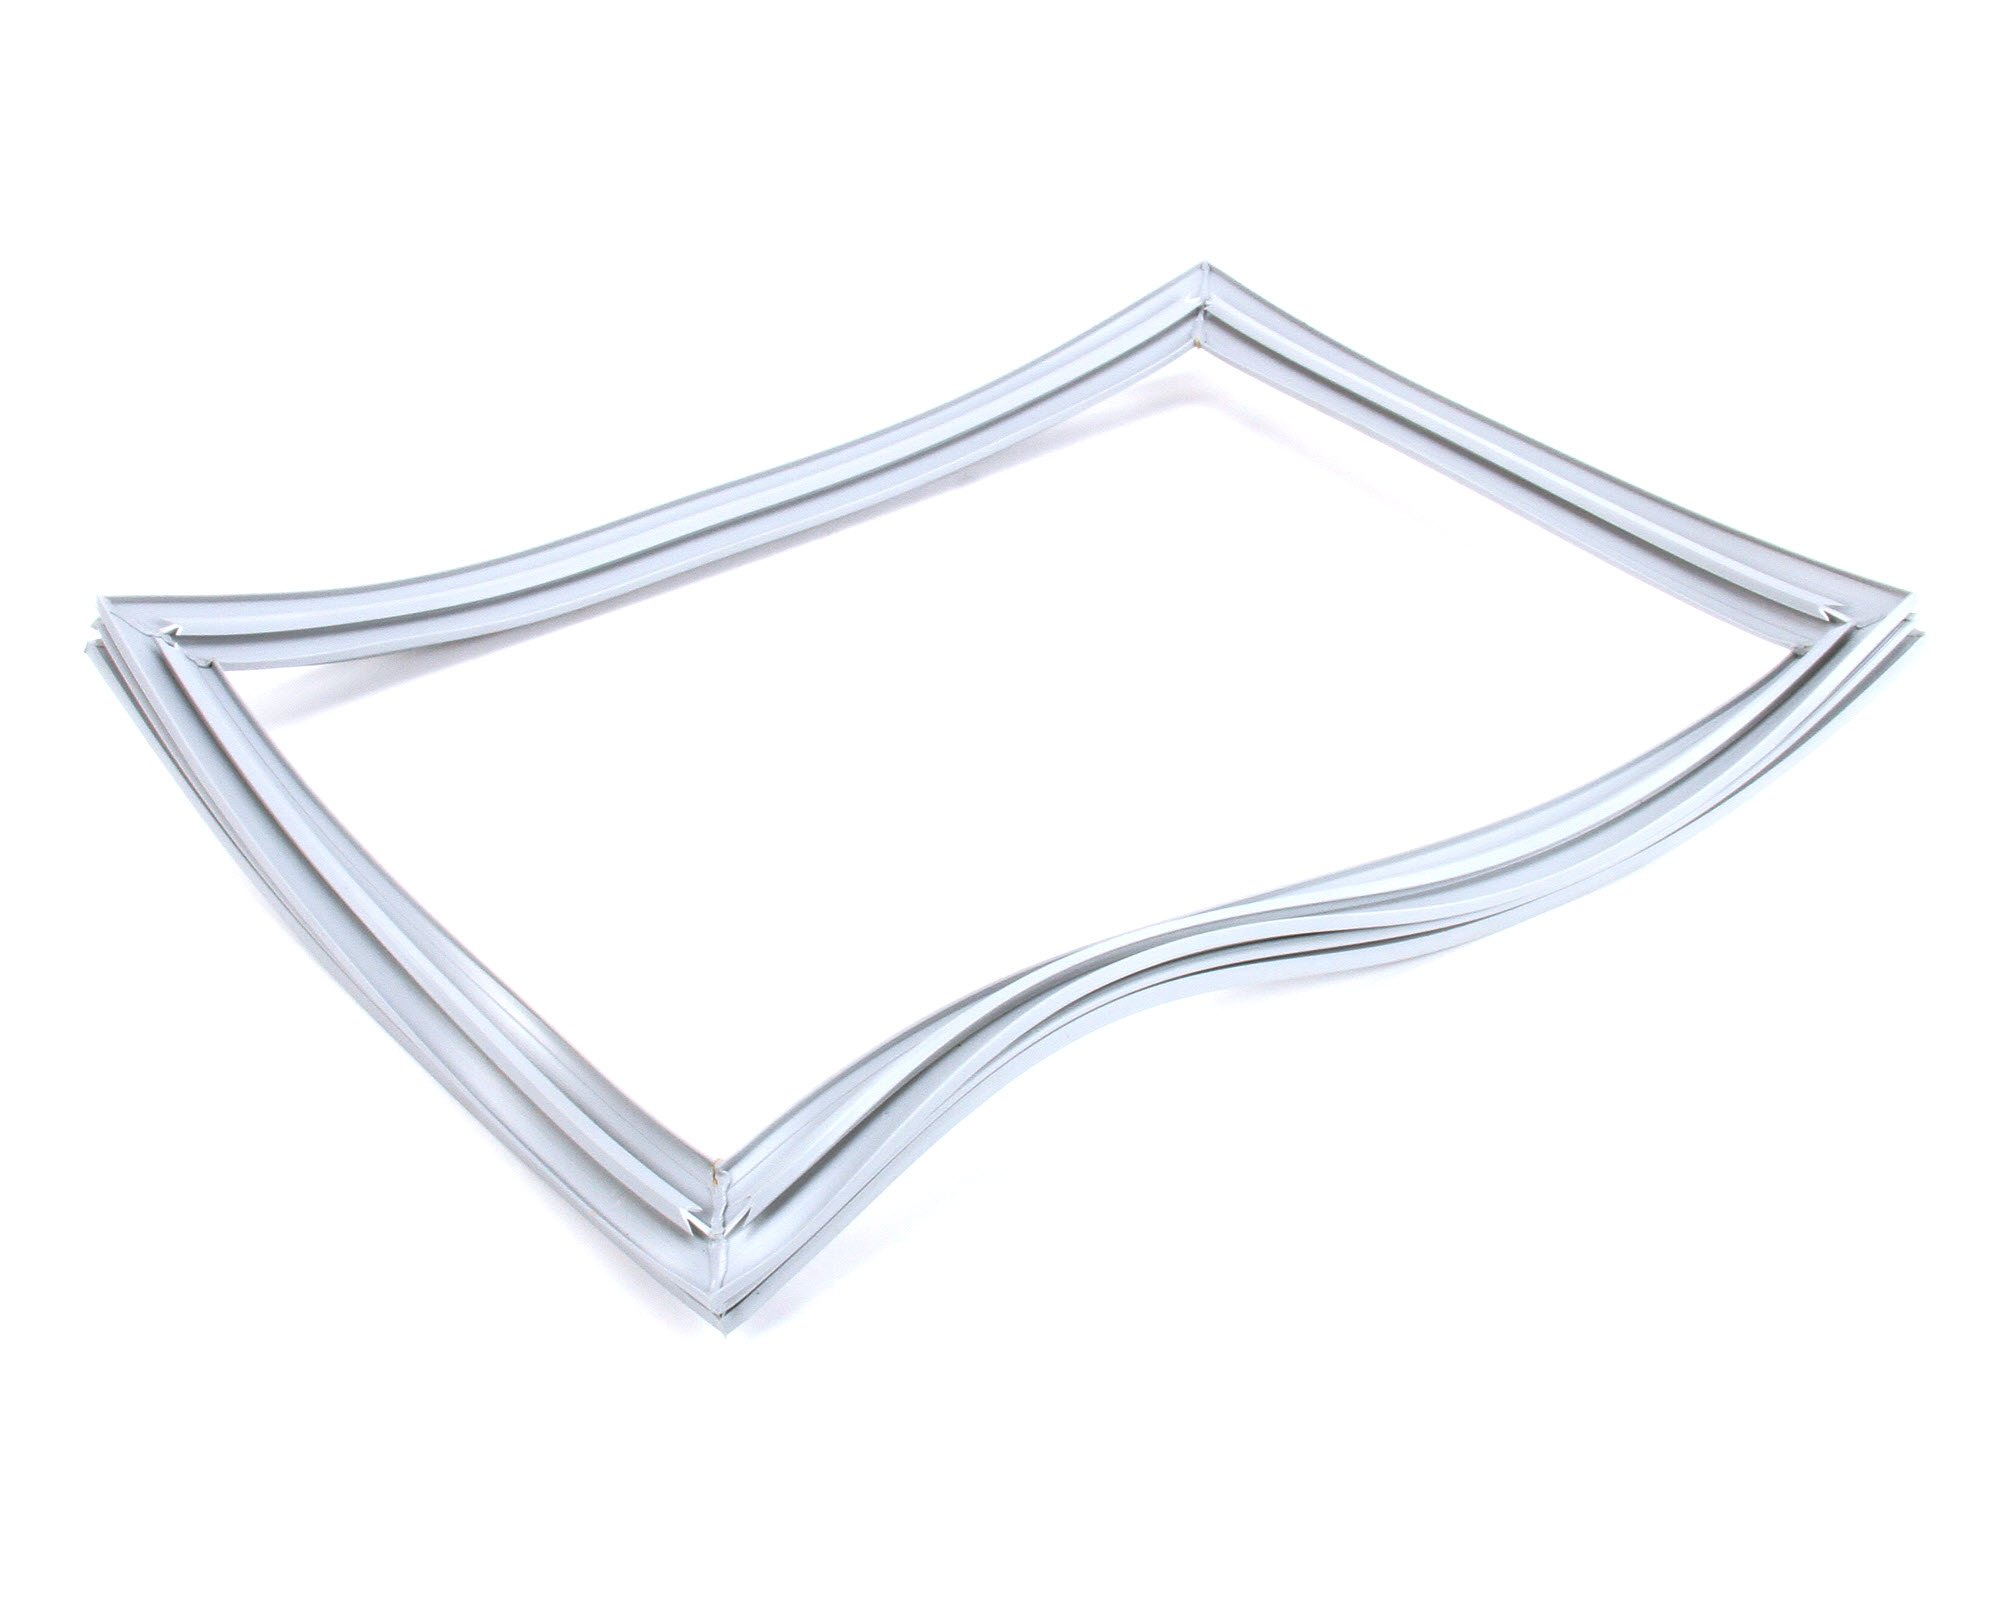 Continental Refrigeration 2-704, Gasket, Door (10 3/4 X 14 1/4) by Continental Refrigeration